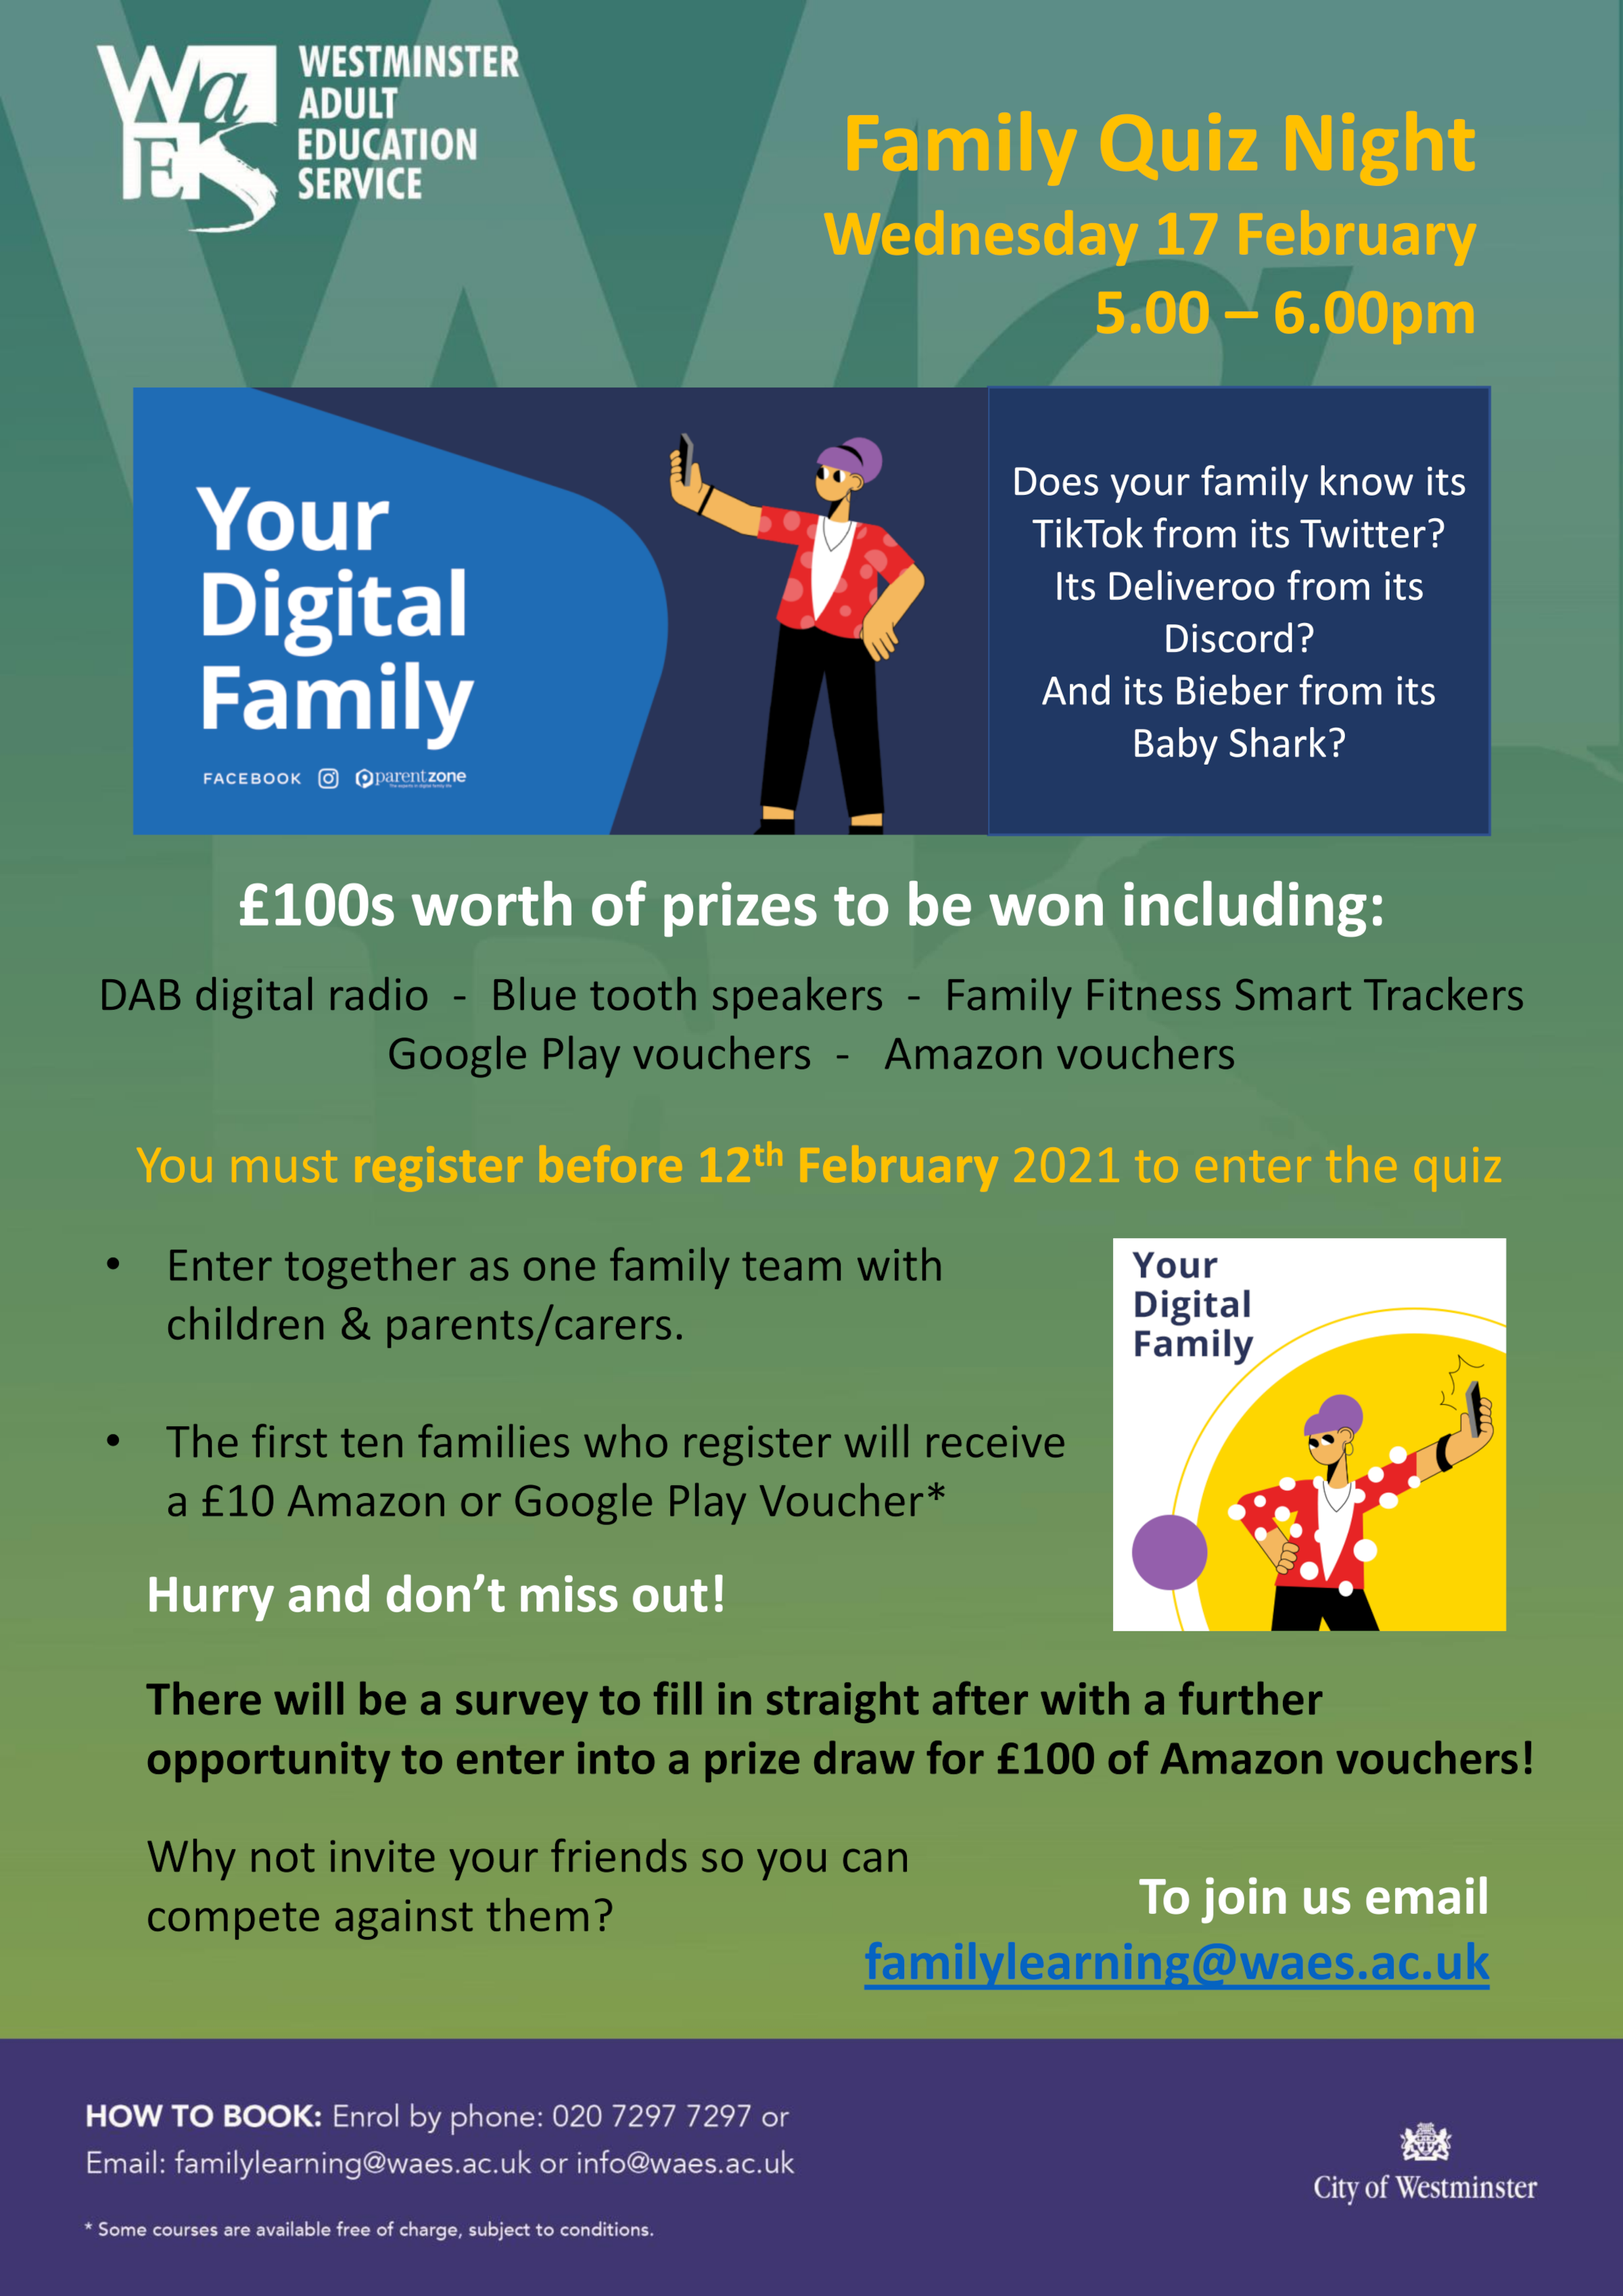 WAES & City Of Westminster Family Quiz Night Wednesday 17 February 5.00 - 6.00 pm Does your family know its TikTok from its Twitter? Its Deliveroo from its Discord? And its Bieber from its Baby Shark? £100s worth of prizes to be won including: DAB digital radio Blue tooth speakers Family Fitness Smart Trackers Google Play vouchers Amazon vouchers You must register before 12th February 2021 to enter the quiz • Enter together as one family team with children & parents/carers. • The first ten families who register will receive a £10 Amazon or Google Play Voucher* Hurry and don't miss out! There will be a survey to fill in straight after with a further opportunity to enter into a prize draw for £100 of Amazon vouchers! Why not invite your friends so you can compete against them? To join us email familylearning@waes.ac.uk How to book: Enrol by phone: 020 7297 7297 or Email: familylearning@waes.ac.uk or info@waes.ac.uk